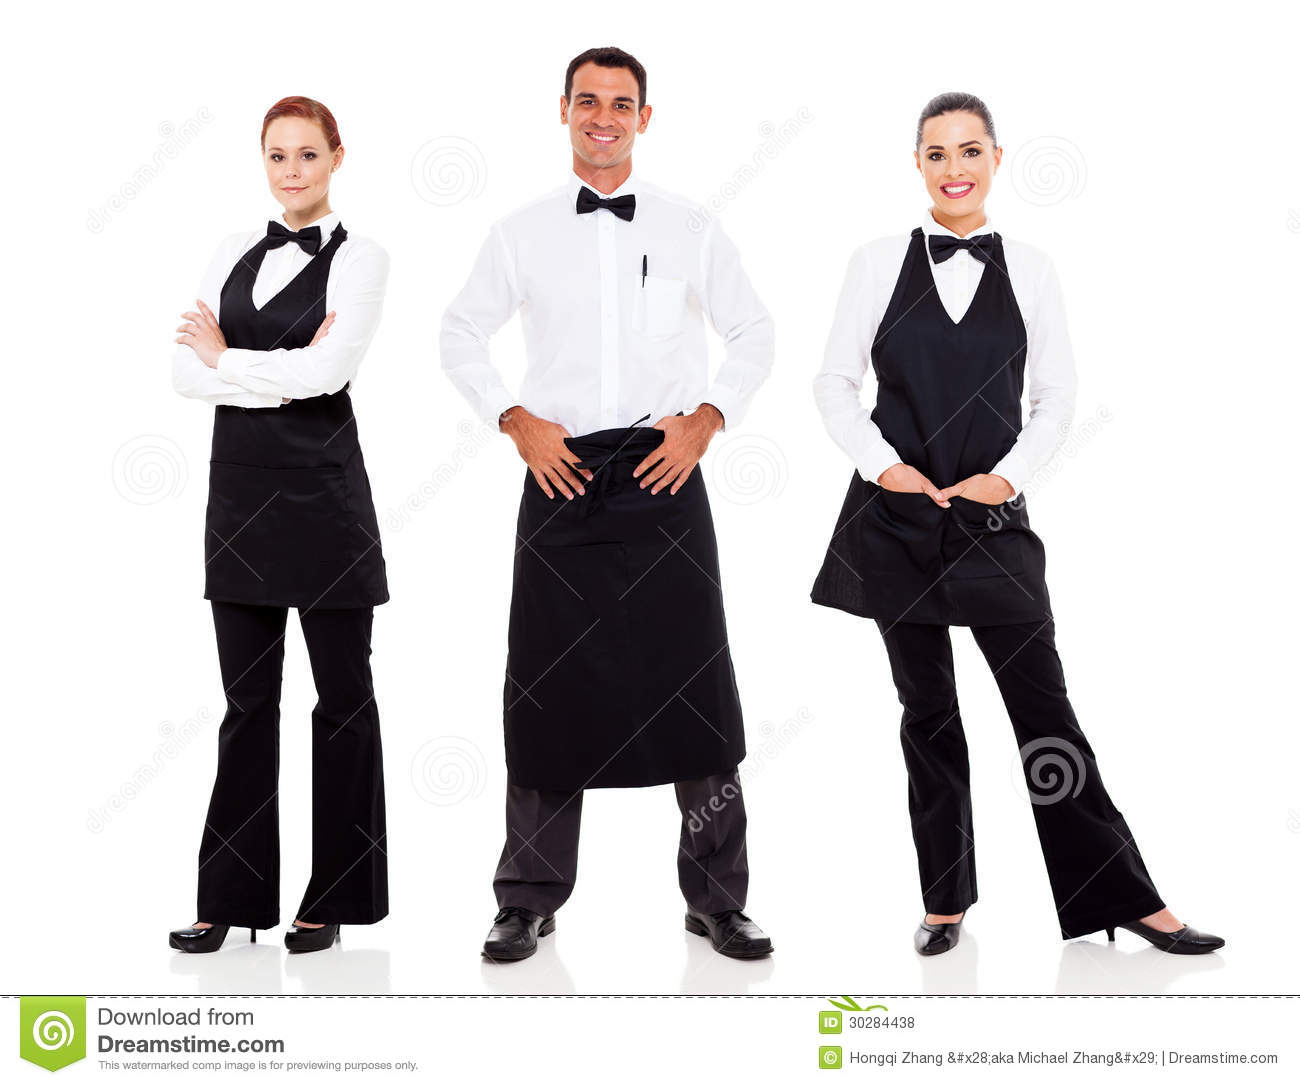 Waiter And Waitress Royalty Free Stock Photos - Image: 30284438